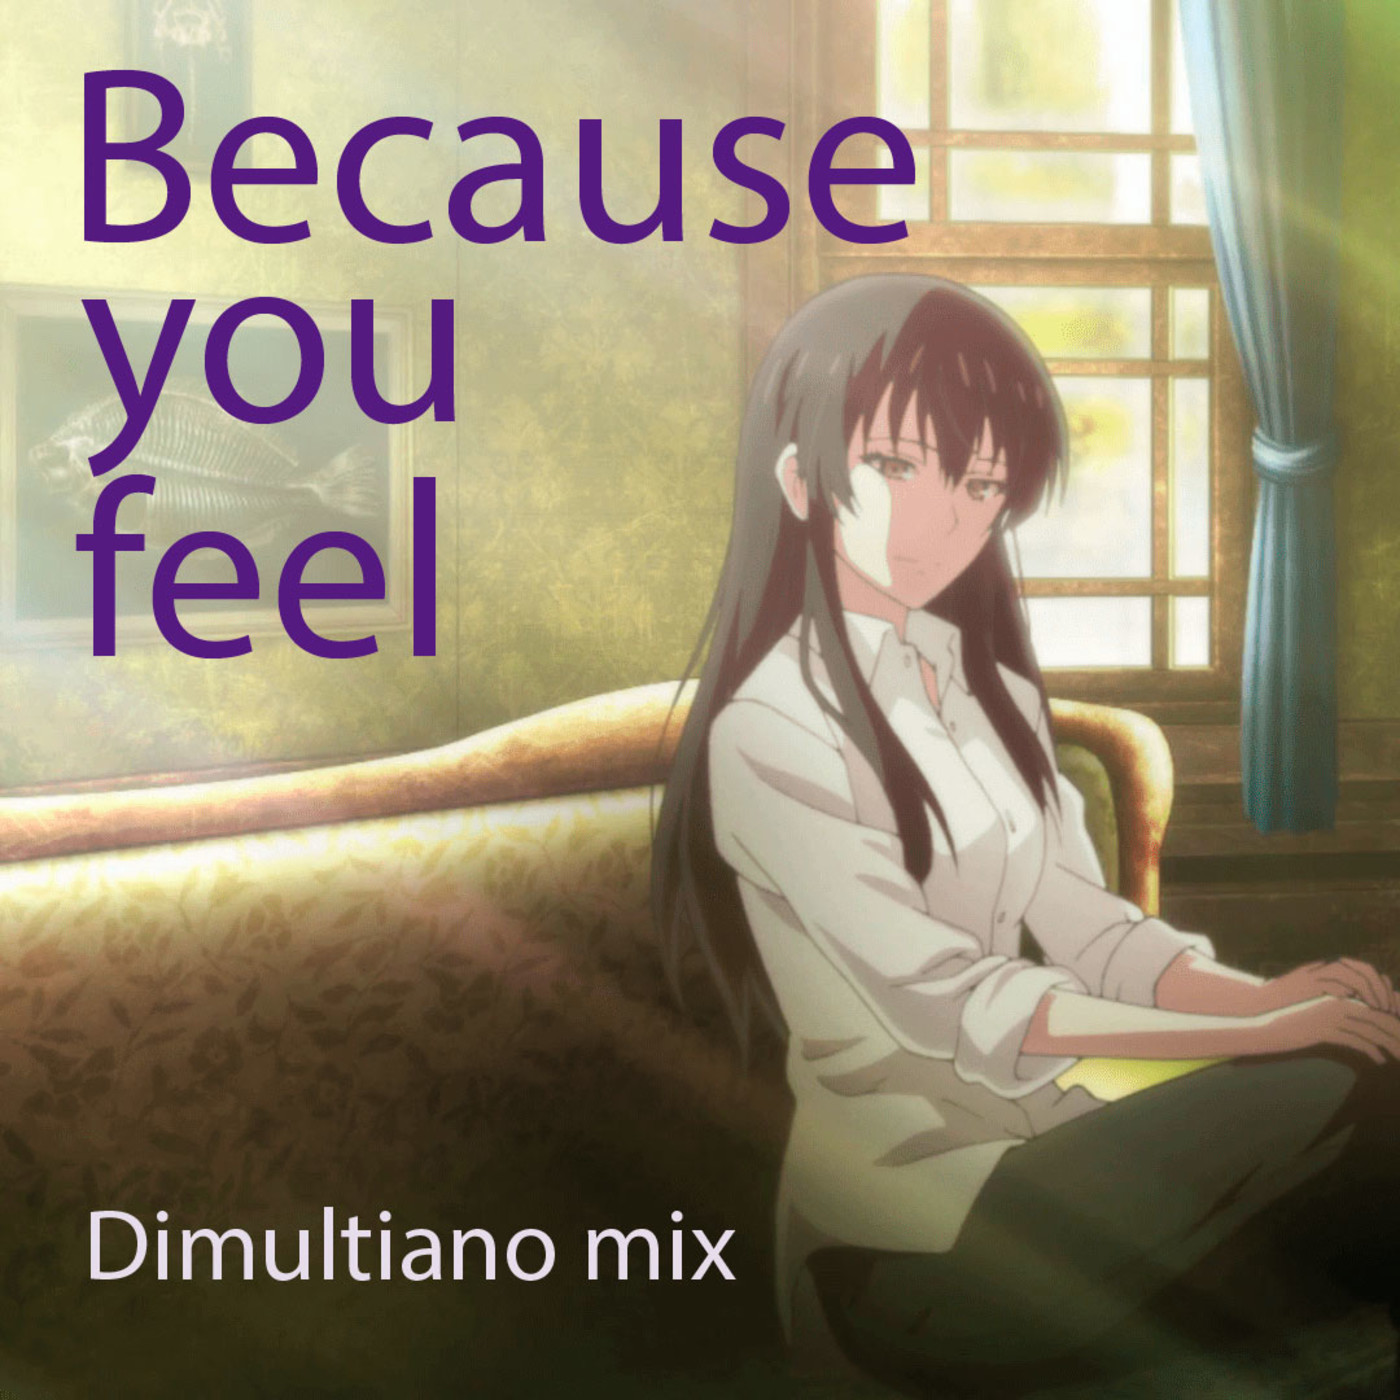 dimultiano mix - Because you Feel